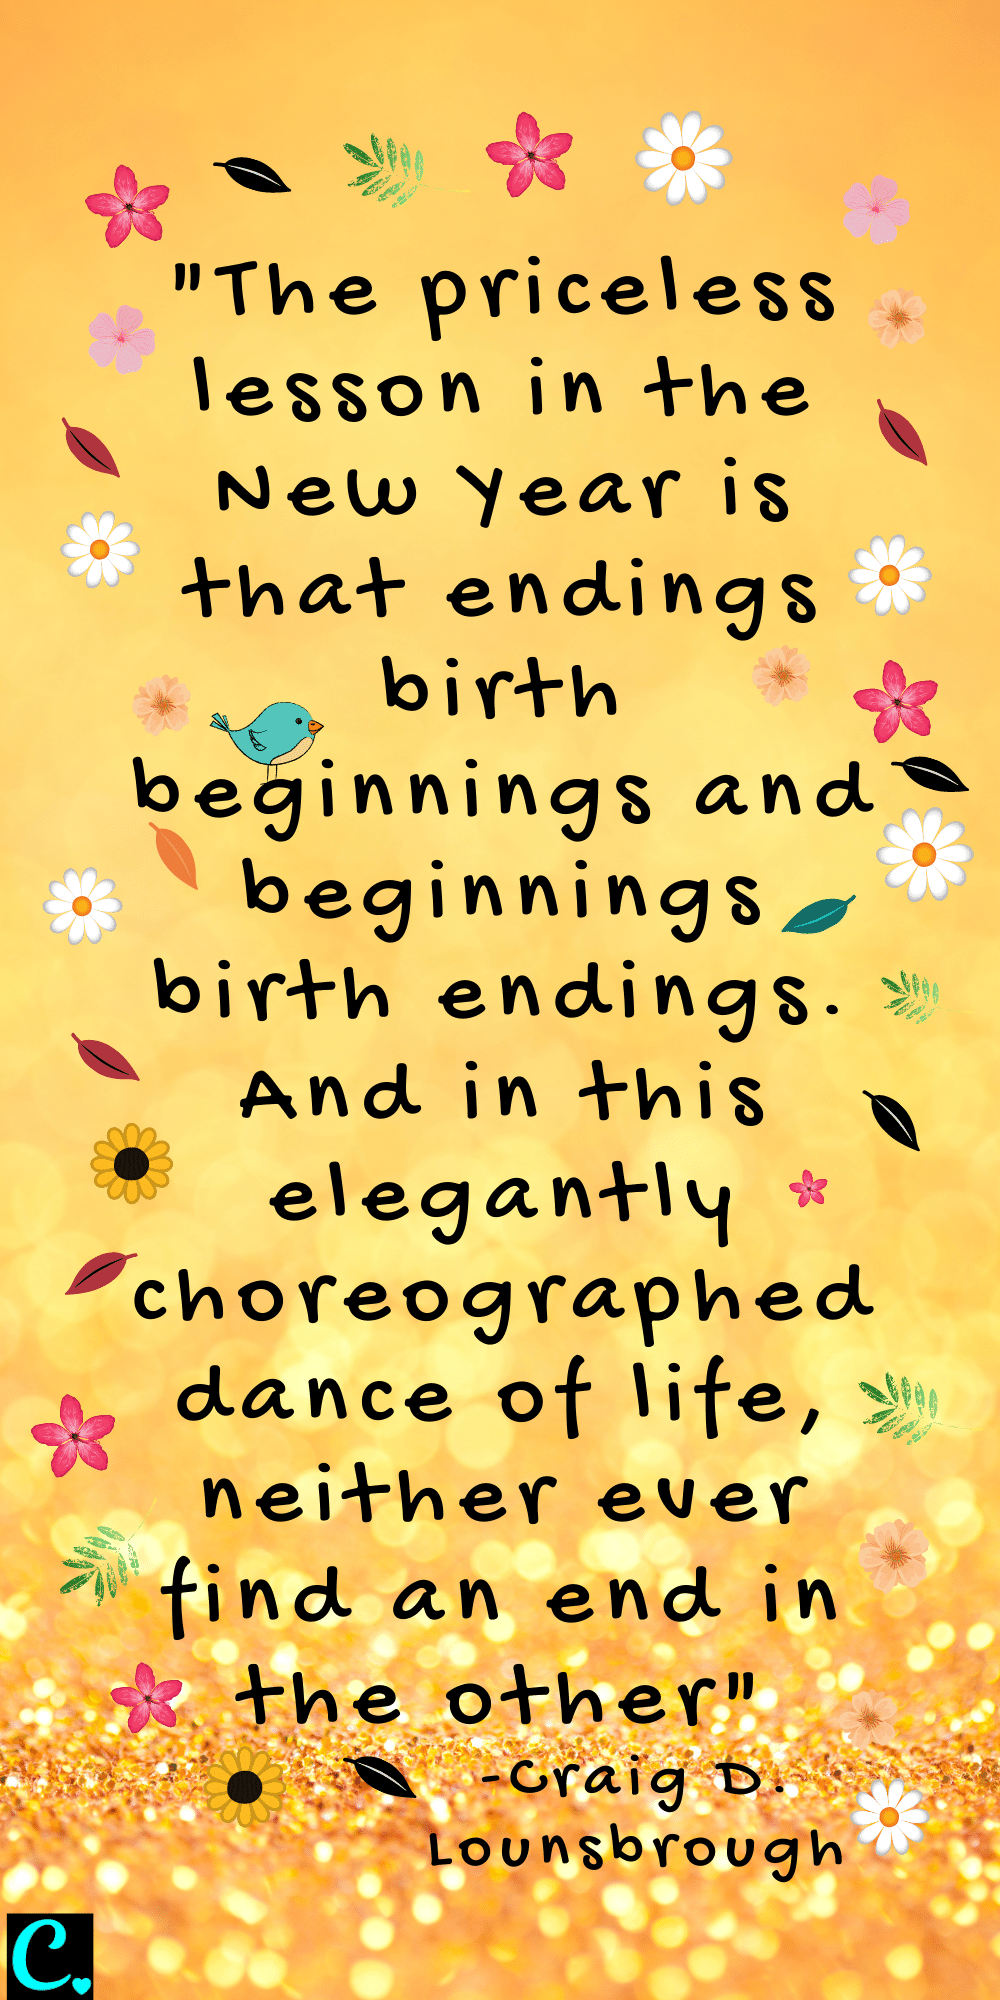 """""""The priceless lesson in the New Year is that endings birth beginnings and beginnings birth endings. And in this elegantly choreographed dance of life, neither ever find an end in the other"""" - Craig D. Lounsbrough"""